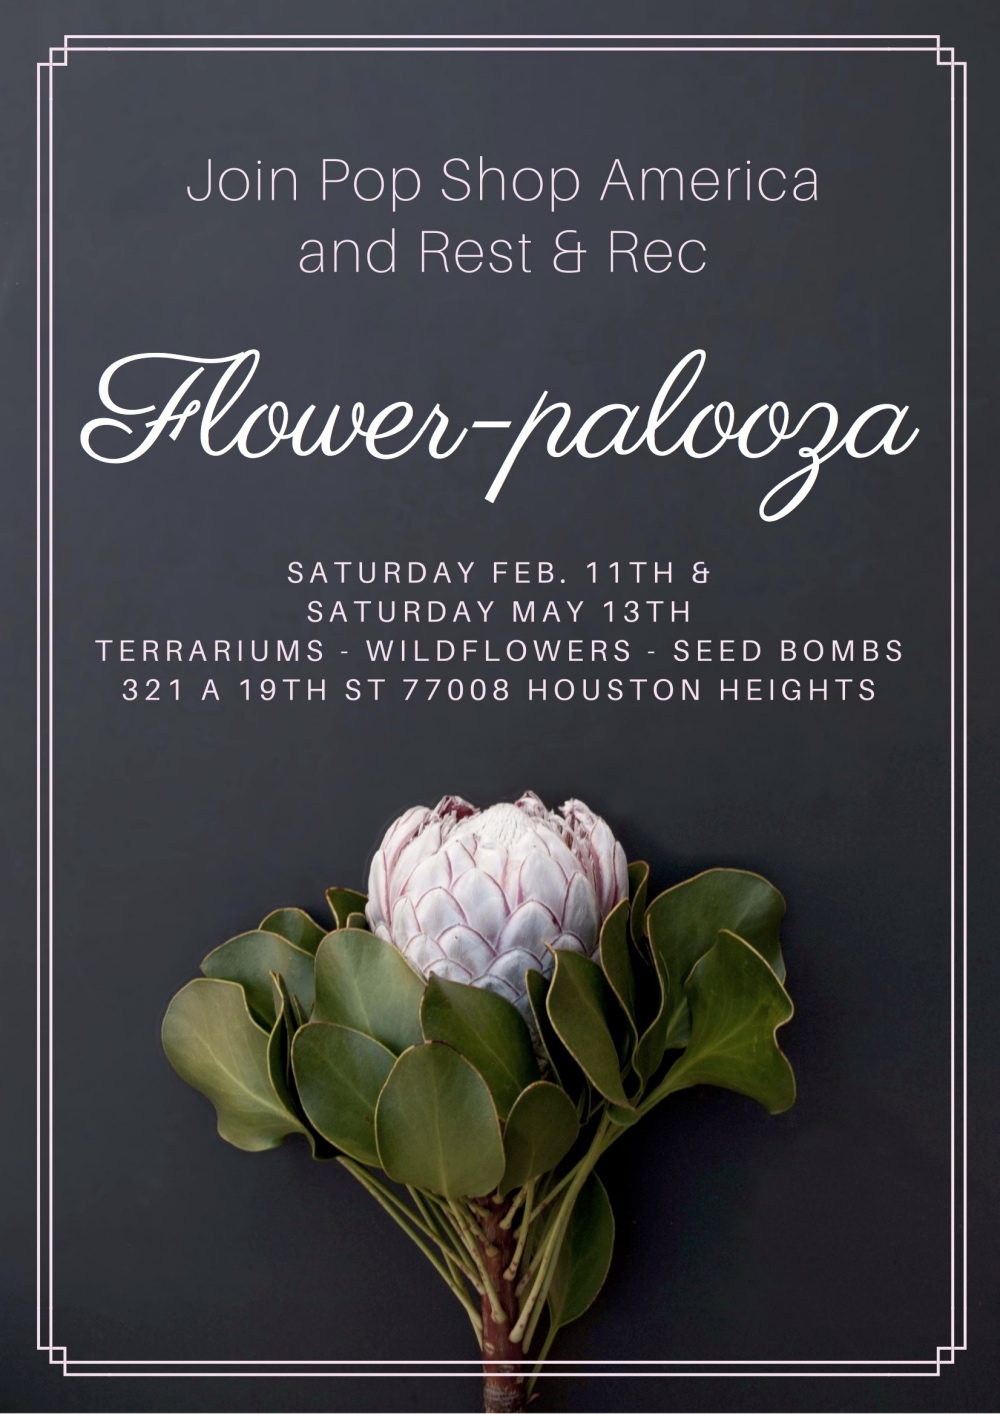 flowerpalooza-terrariums-and-wildflowers-event-at-rest-rec-event_small